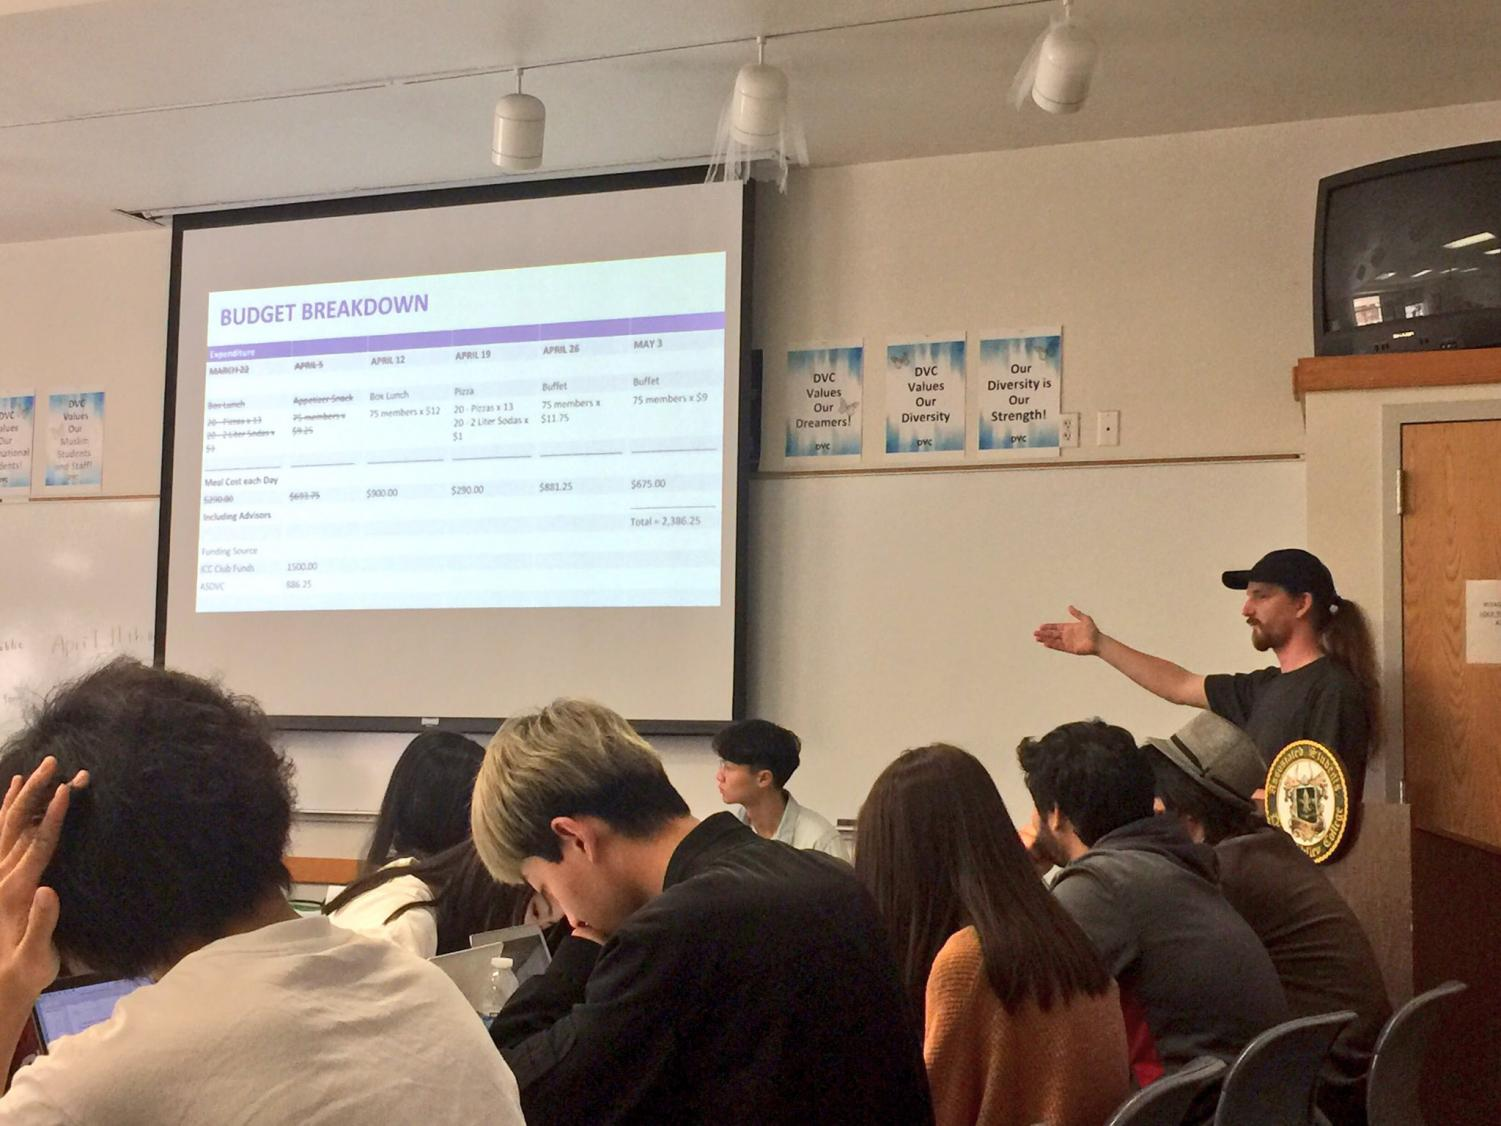 Peter Swenson presents budget breakdown for providing meals to ICC meetings at the Margaret Lesher Student Union on April 03, 2018.